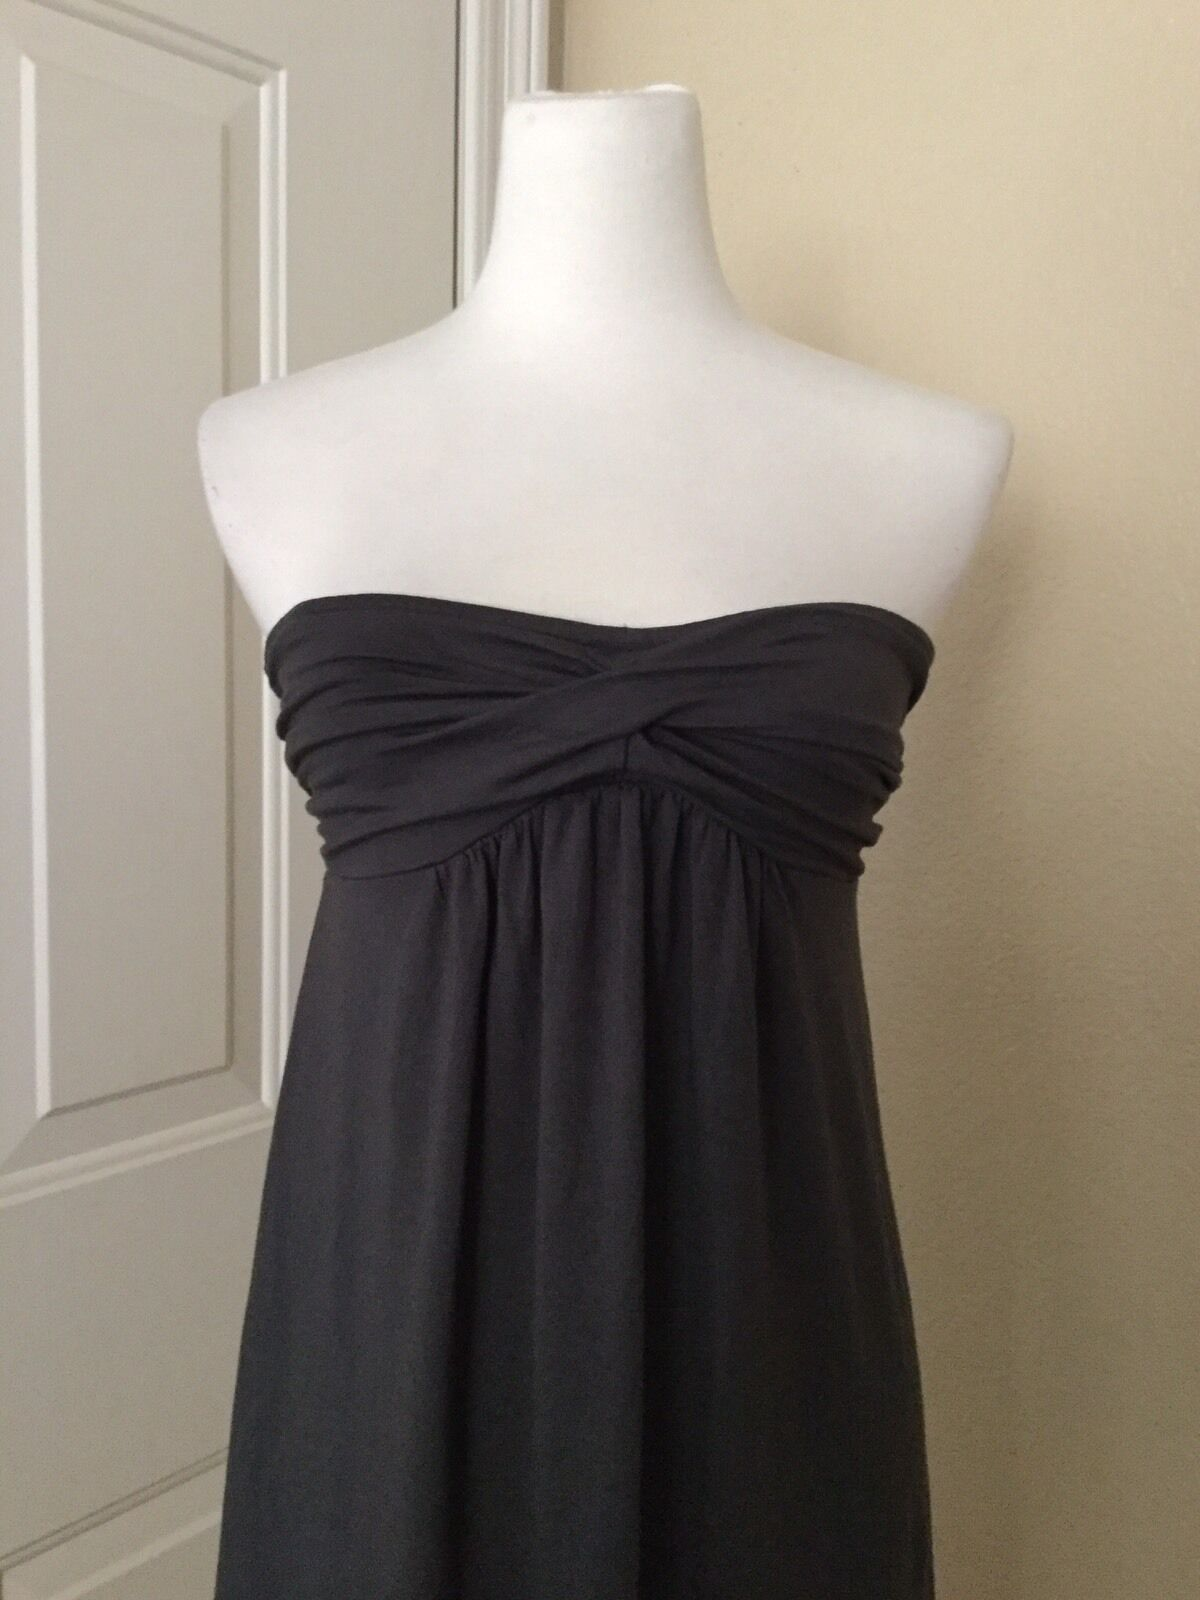 NWT J.CREW Dressy Jersey Strapless Dress in Gray, Size Small image 6